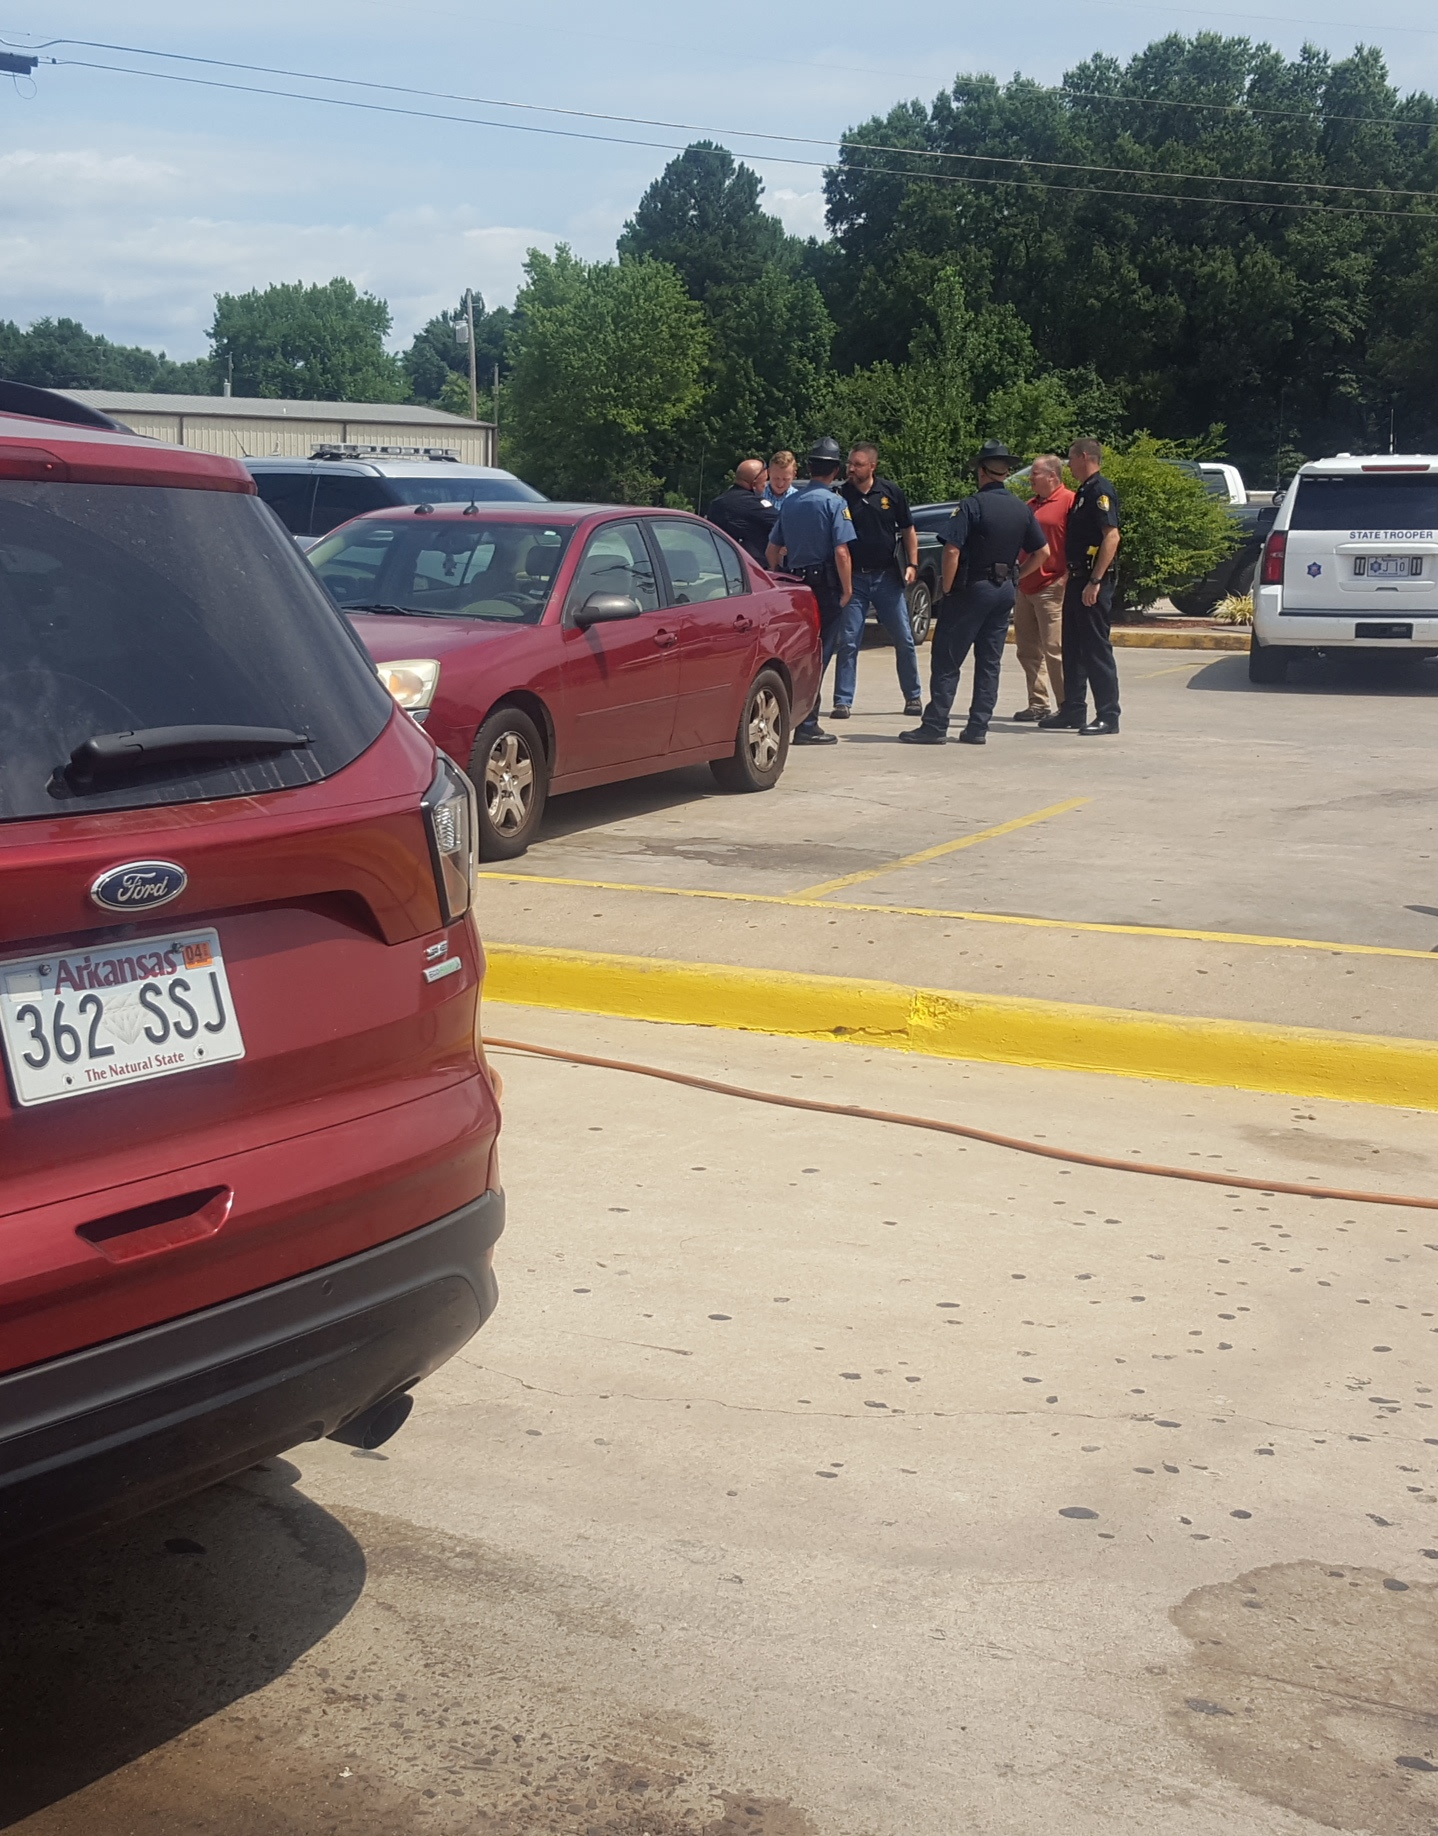 The car was found in Atkins at the VP/McDonald's convenience store at Interstate 40.